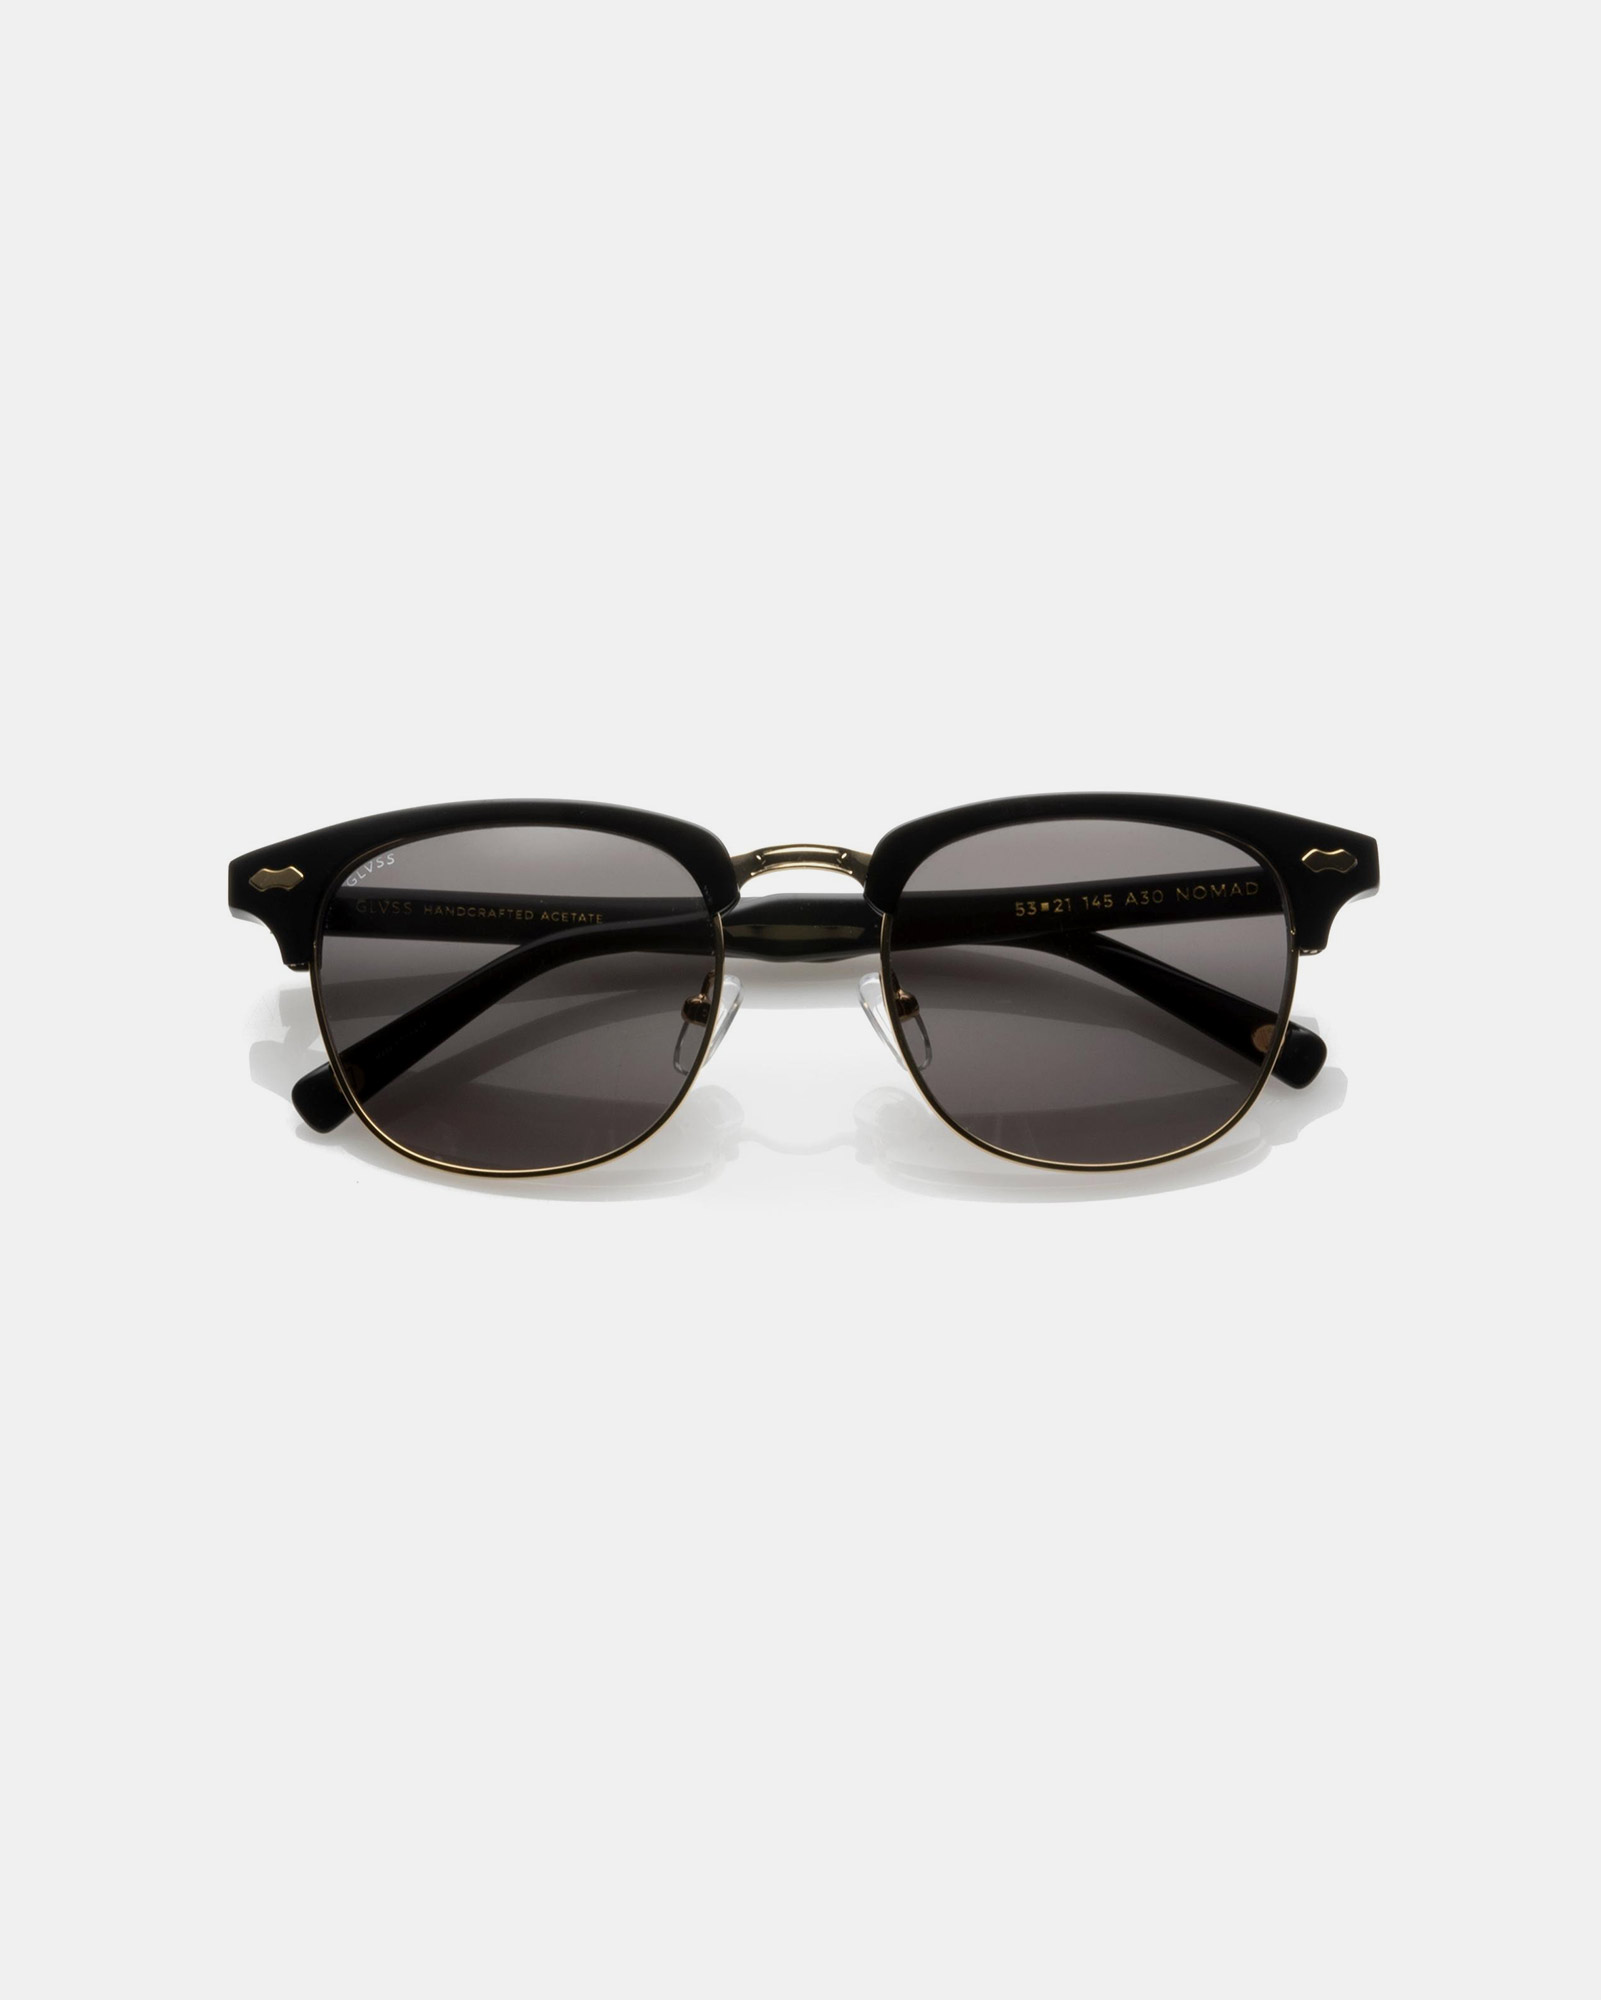 GLVSS Nomad Black/Gold Sunglasses